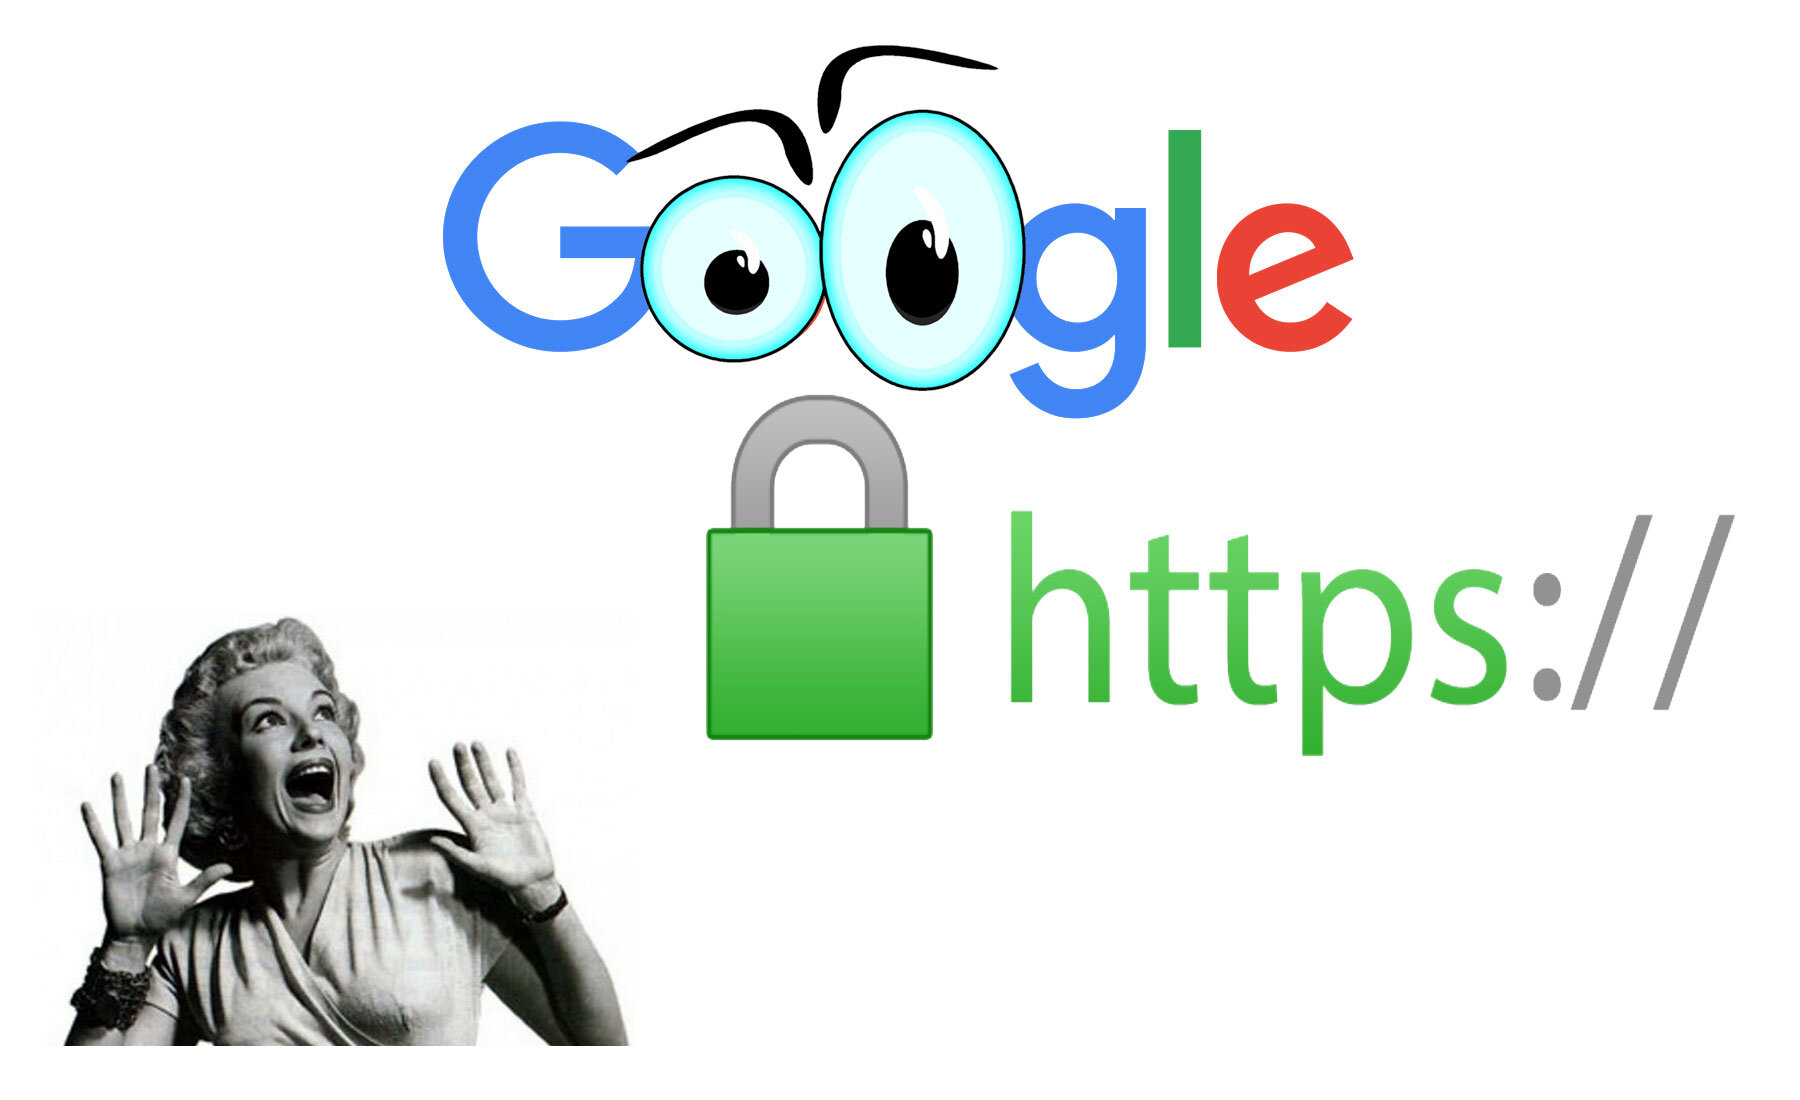 Google requires https